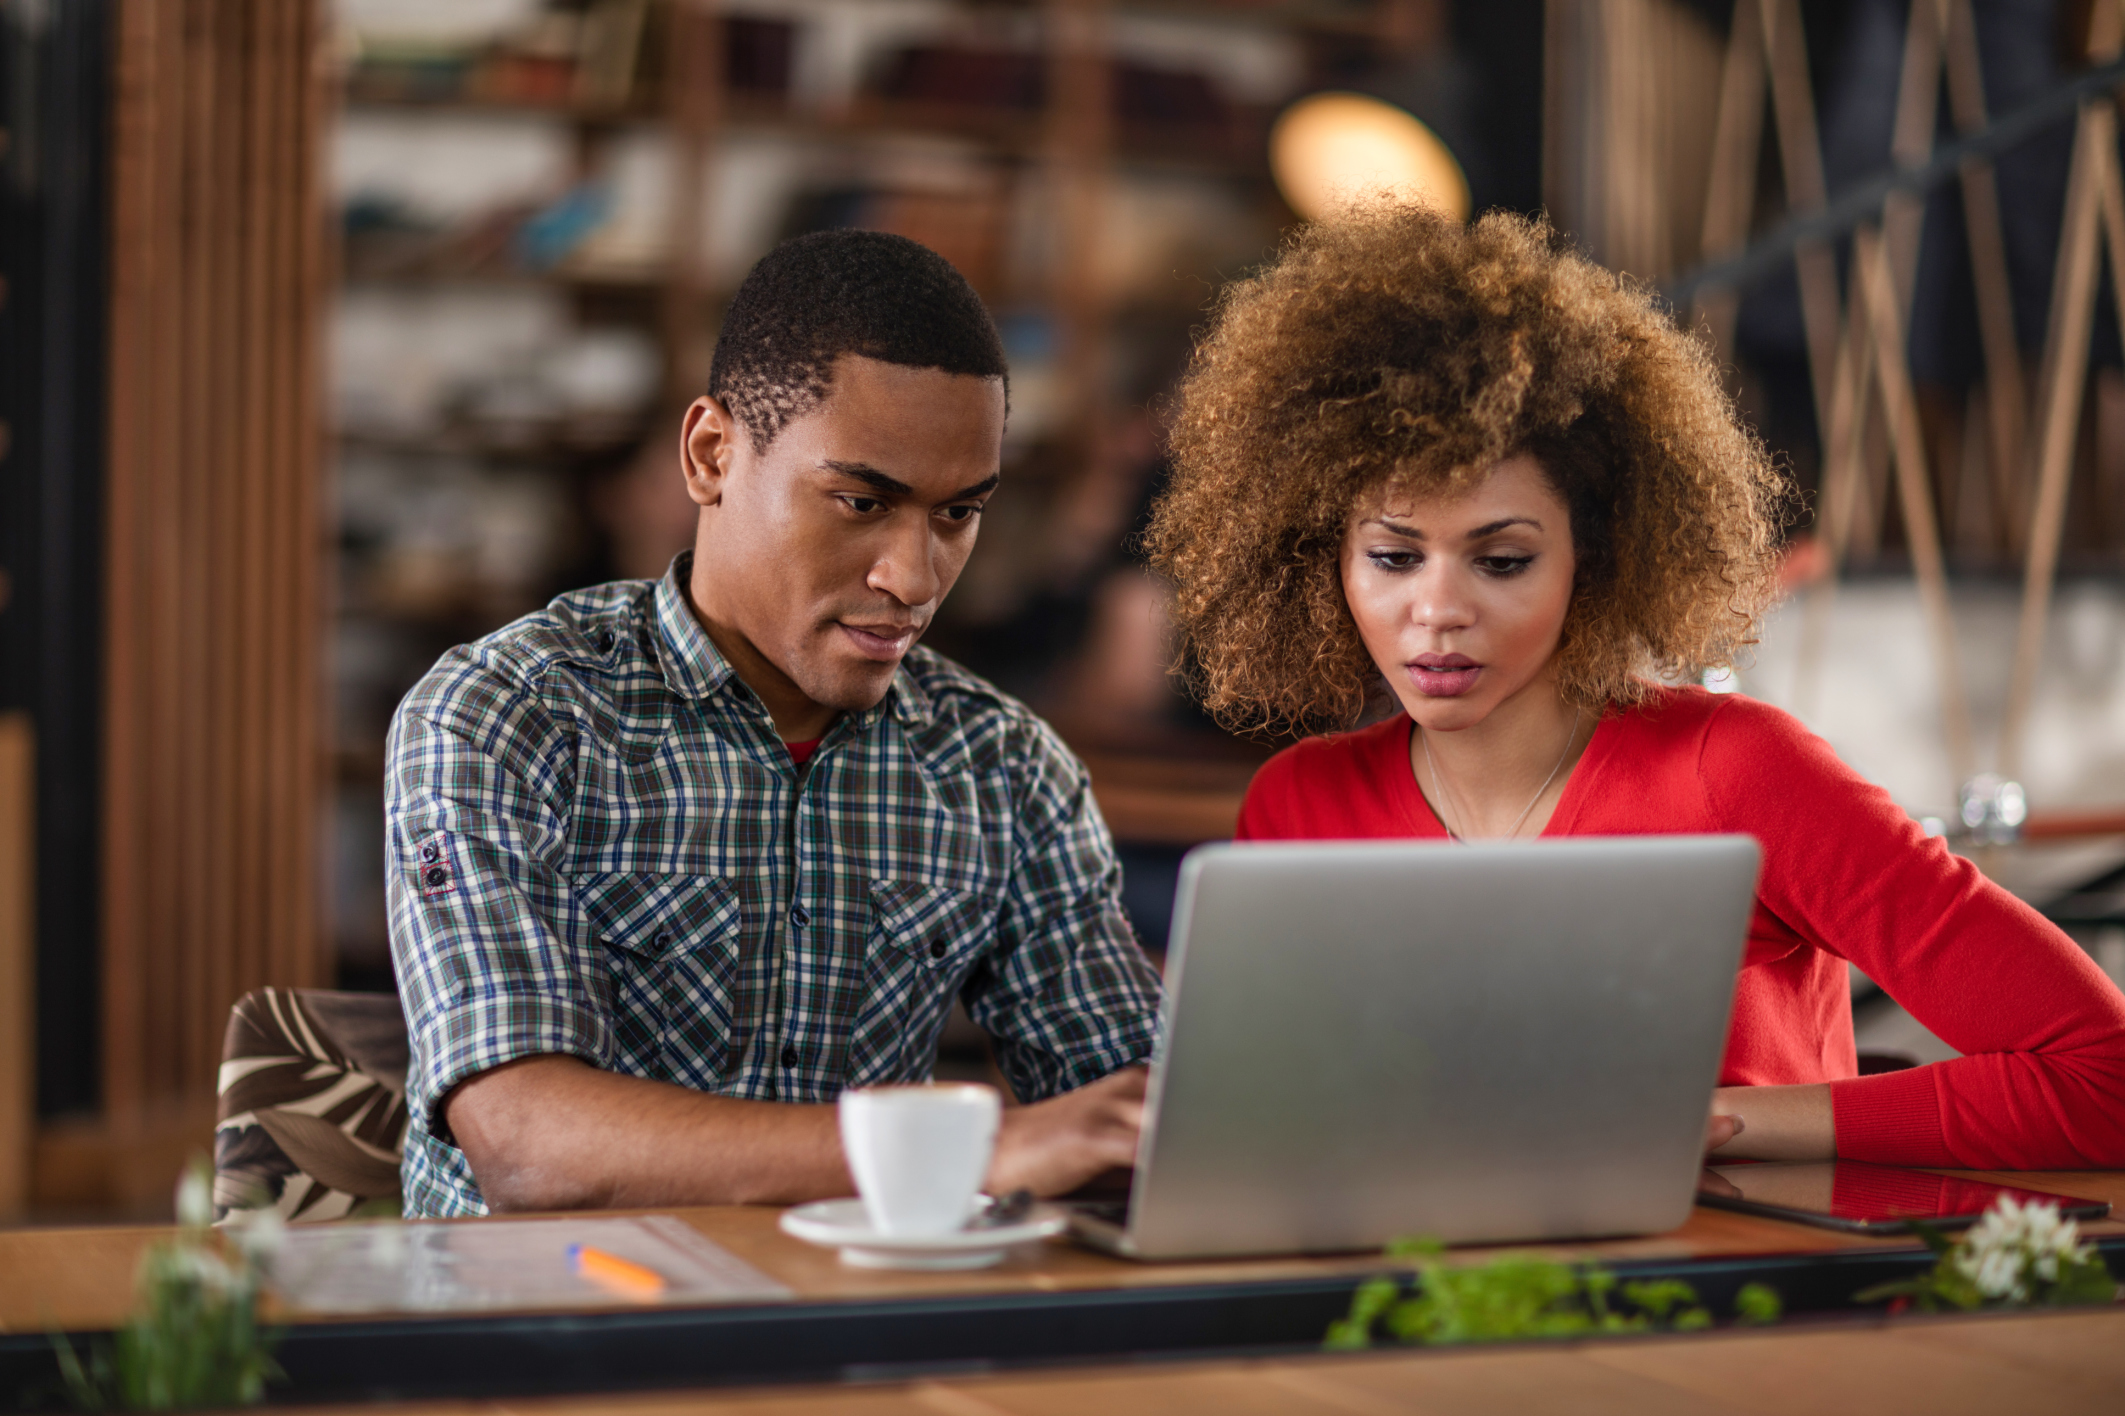 African American business colleagues working together on a laptop.